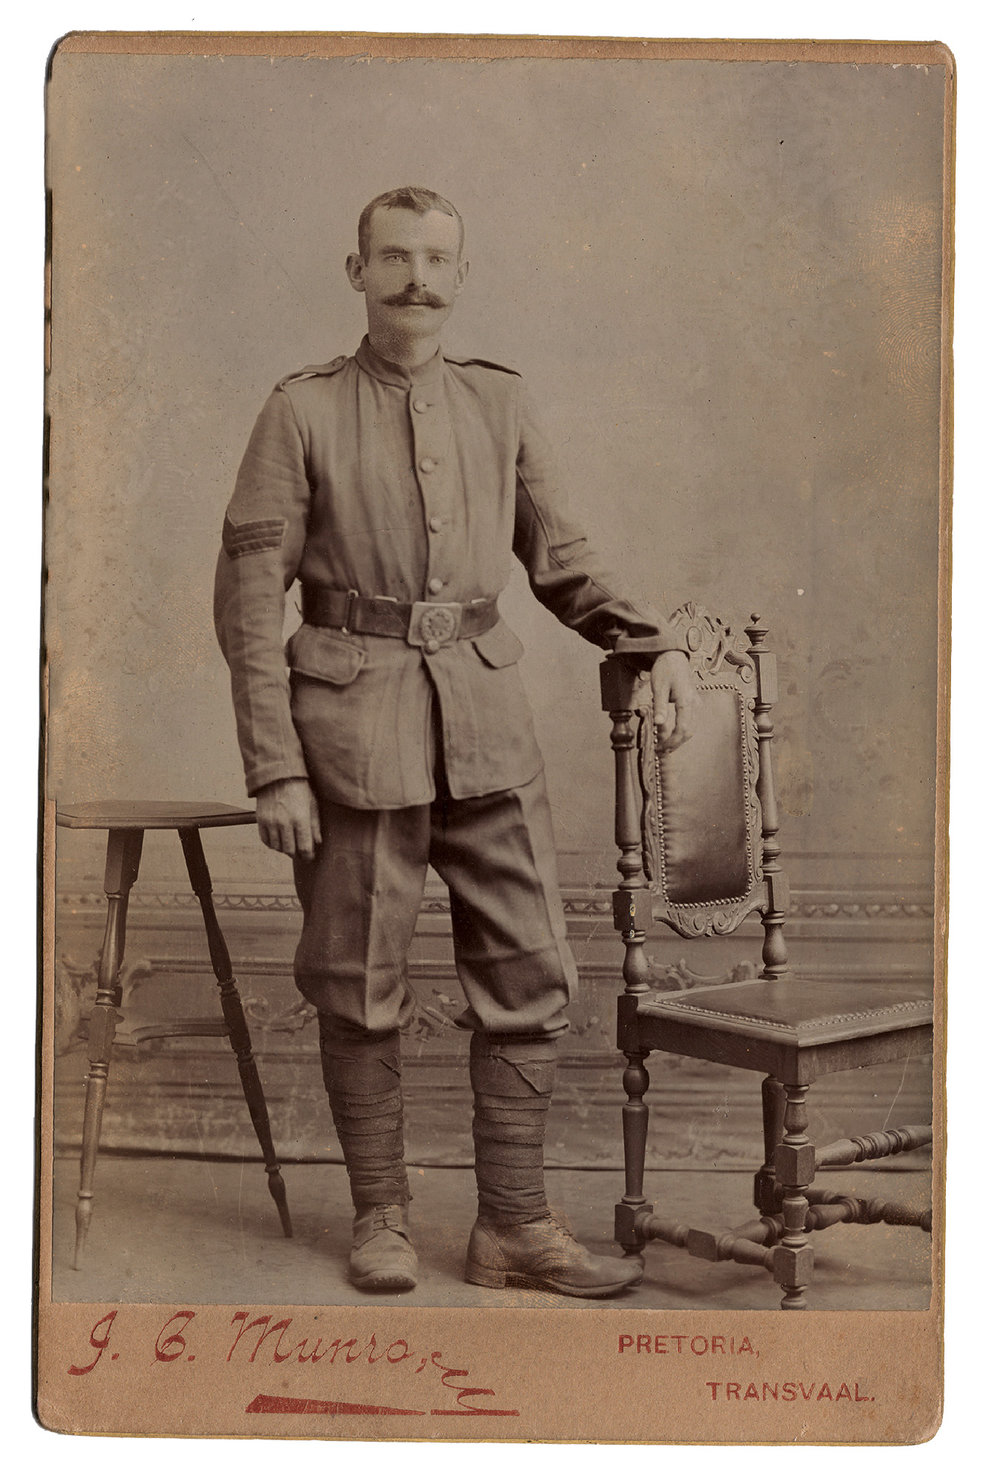 John Gillies in Pretoria, Transvaal, during the Second Boer War.